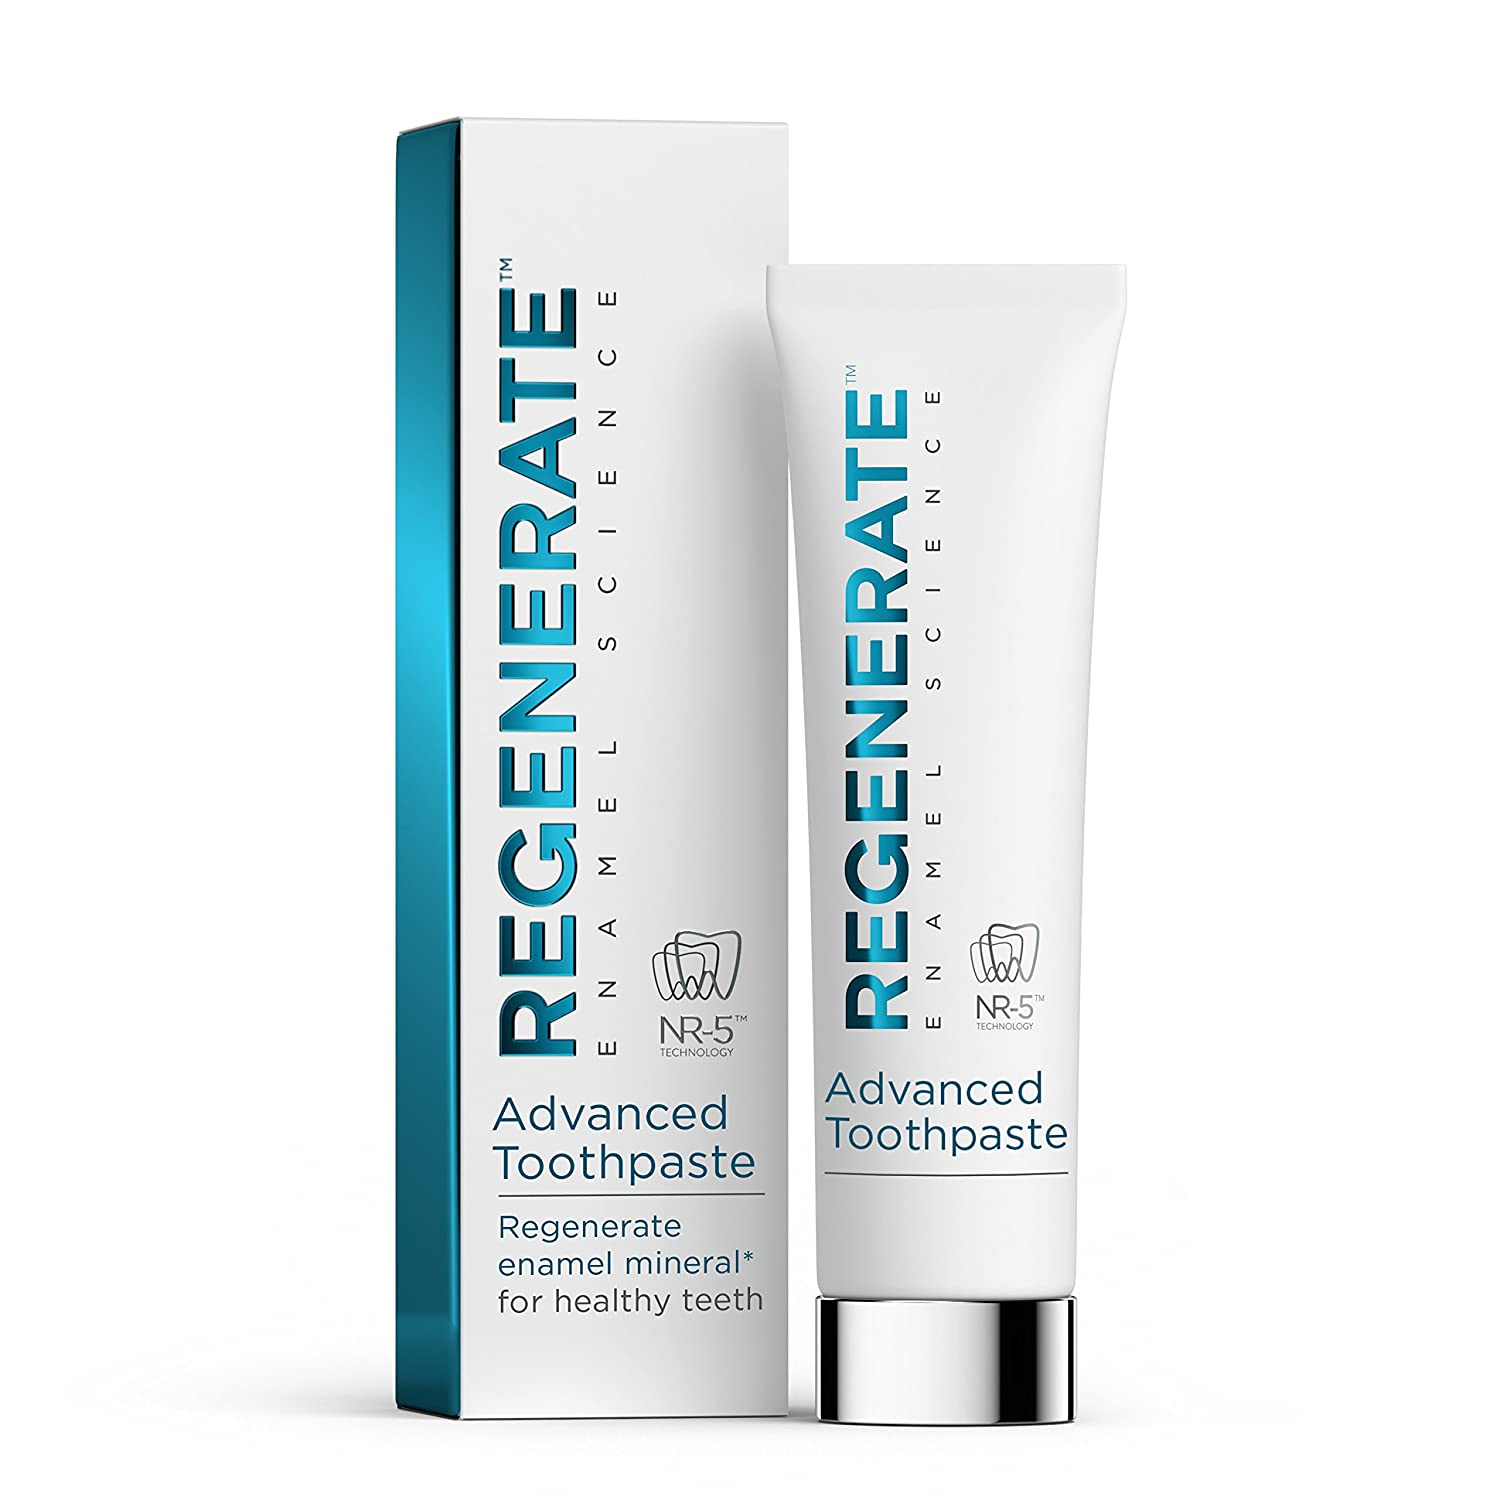 Amazoncom Regenerate Enamel Science Advanced Toothpaste 75ml Beauty